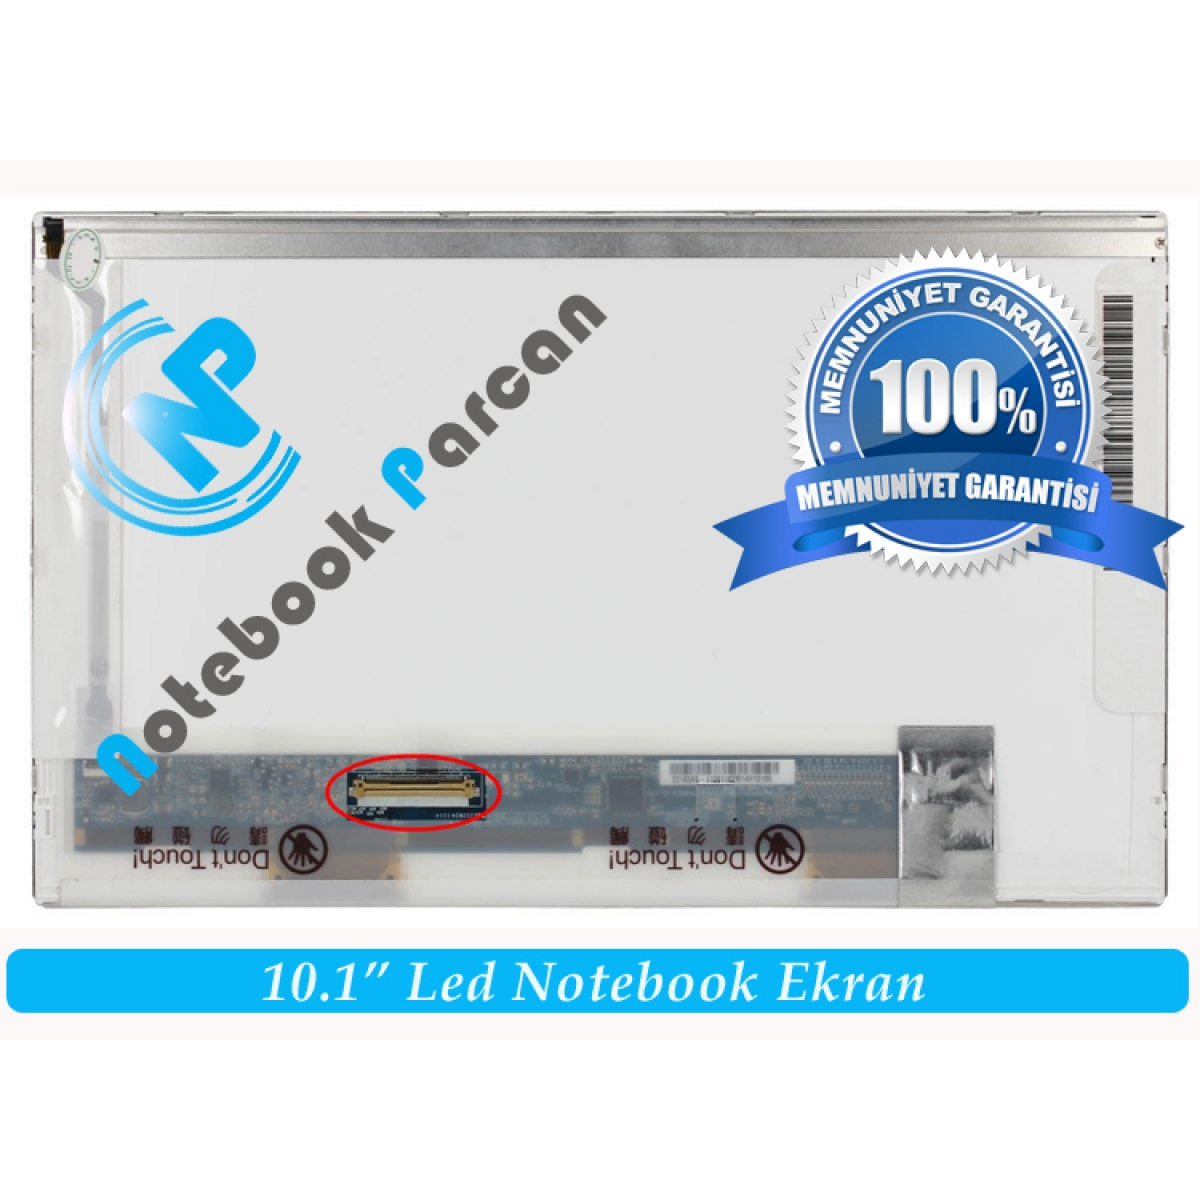 10.1 LED Acer eMachines 250 Notebook Ekran Pane